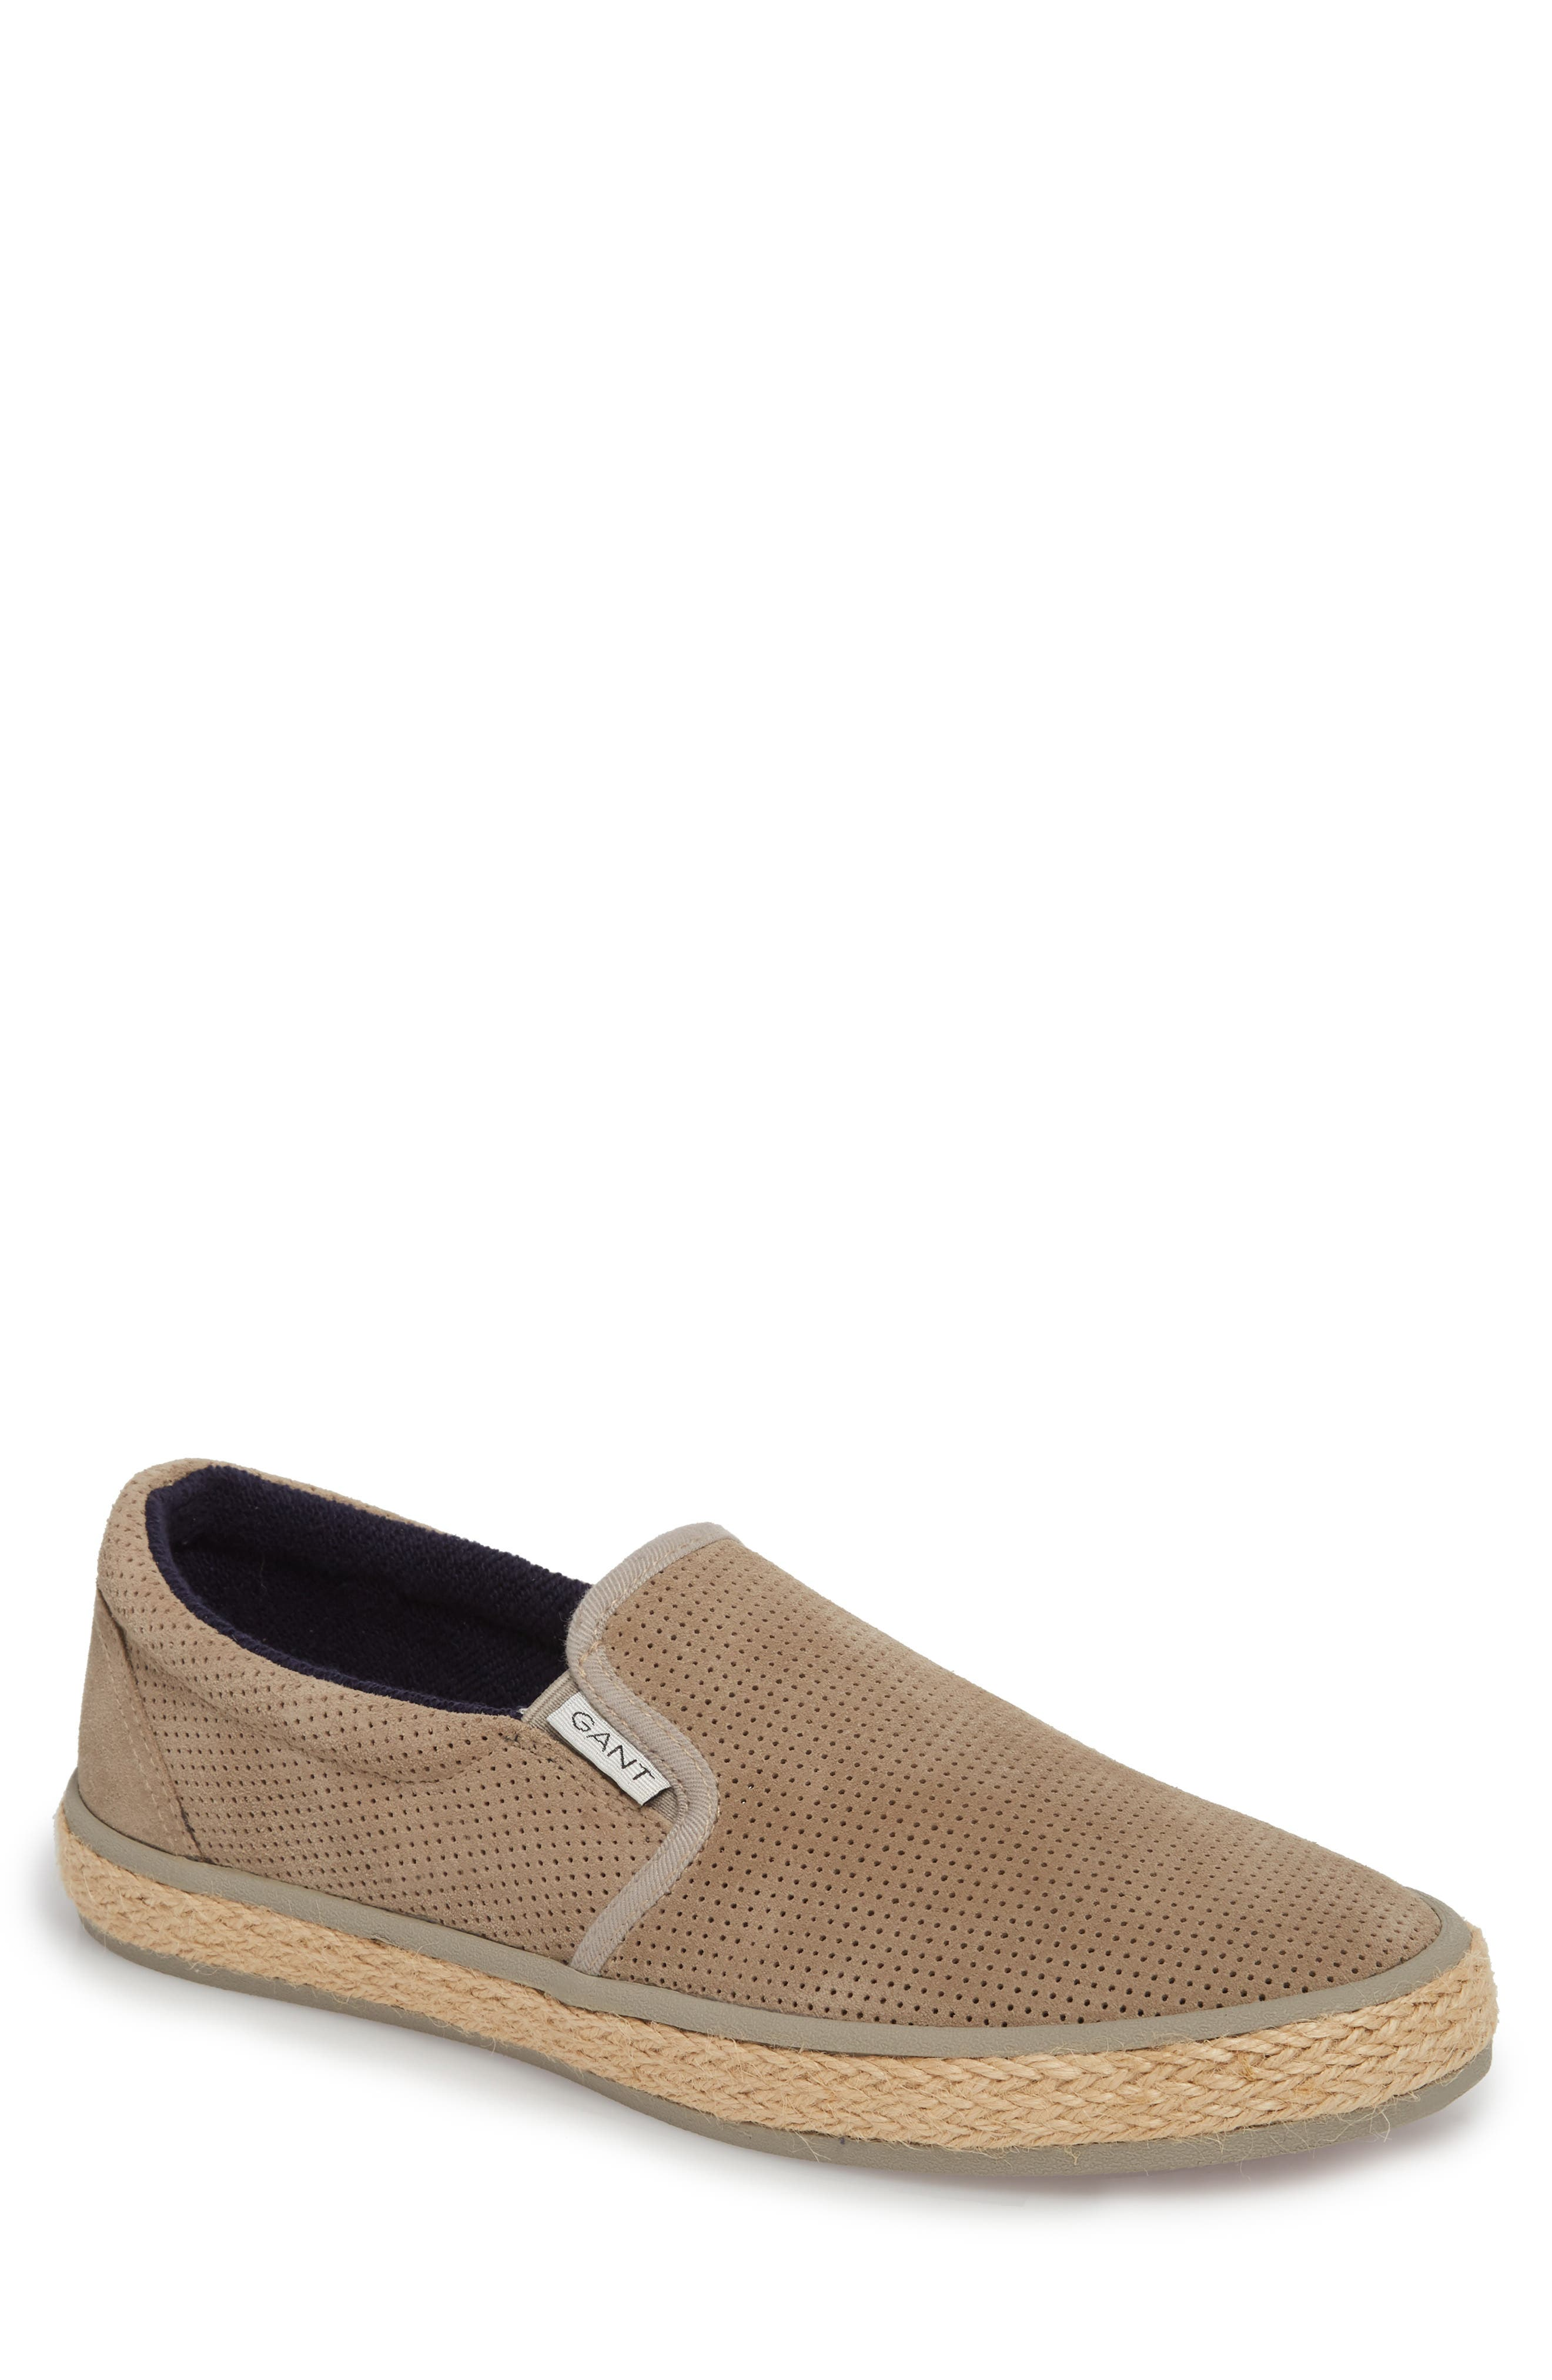 Master Perforated Slip-On Sneaker,                         Main,                         color, Cashew Brown